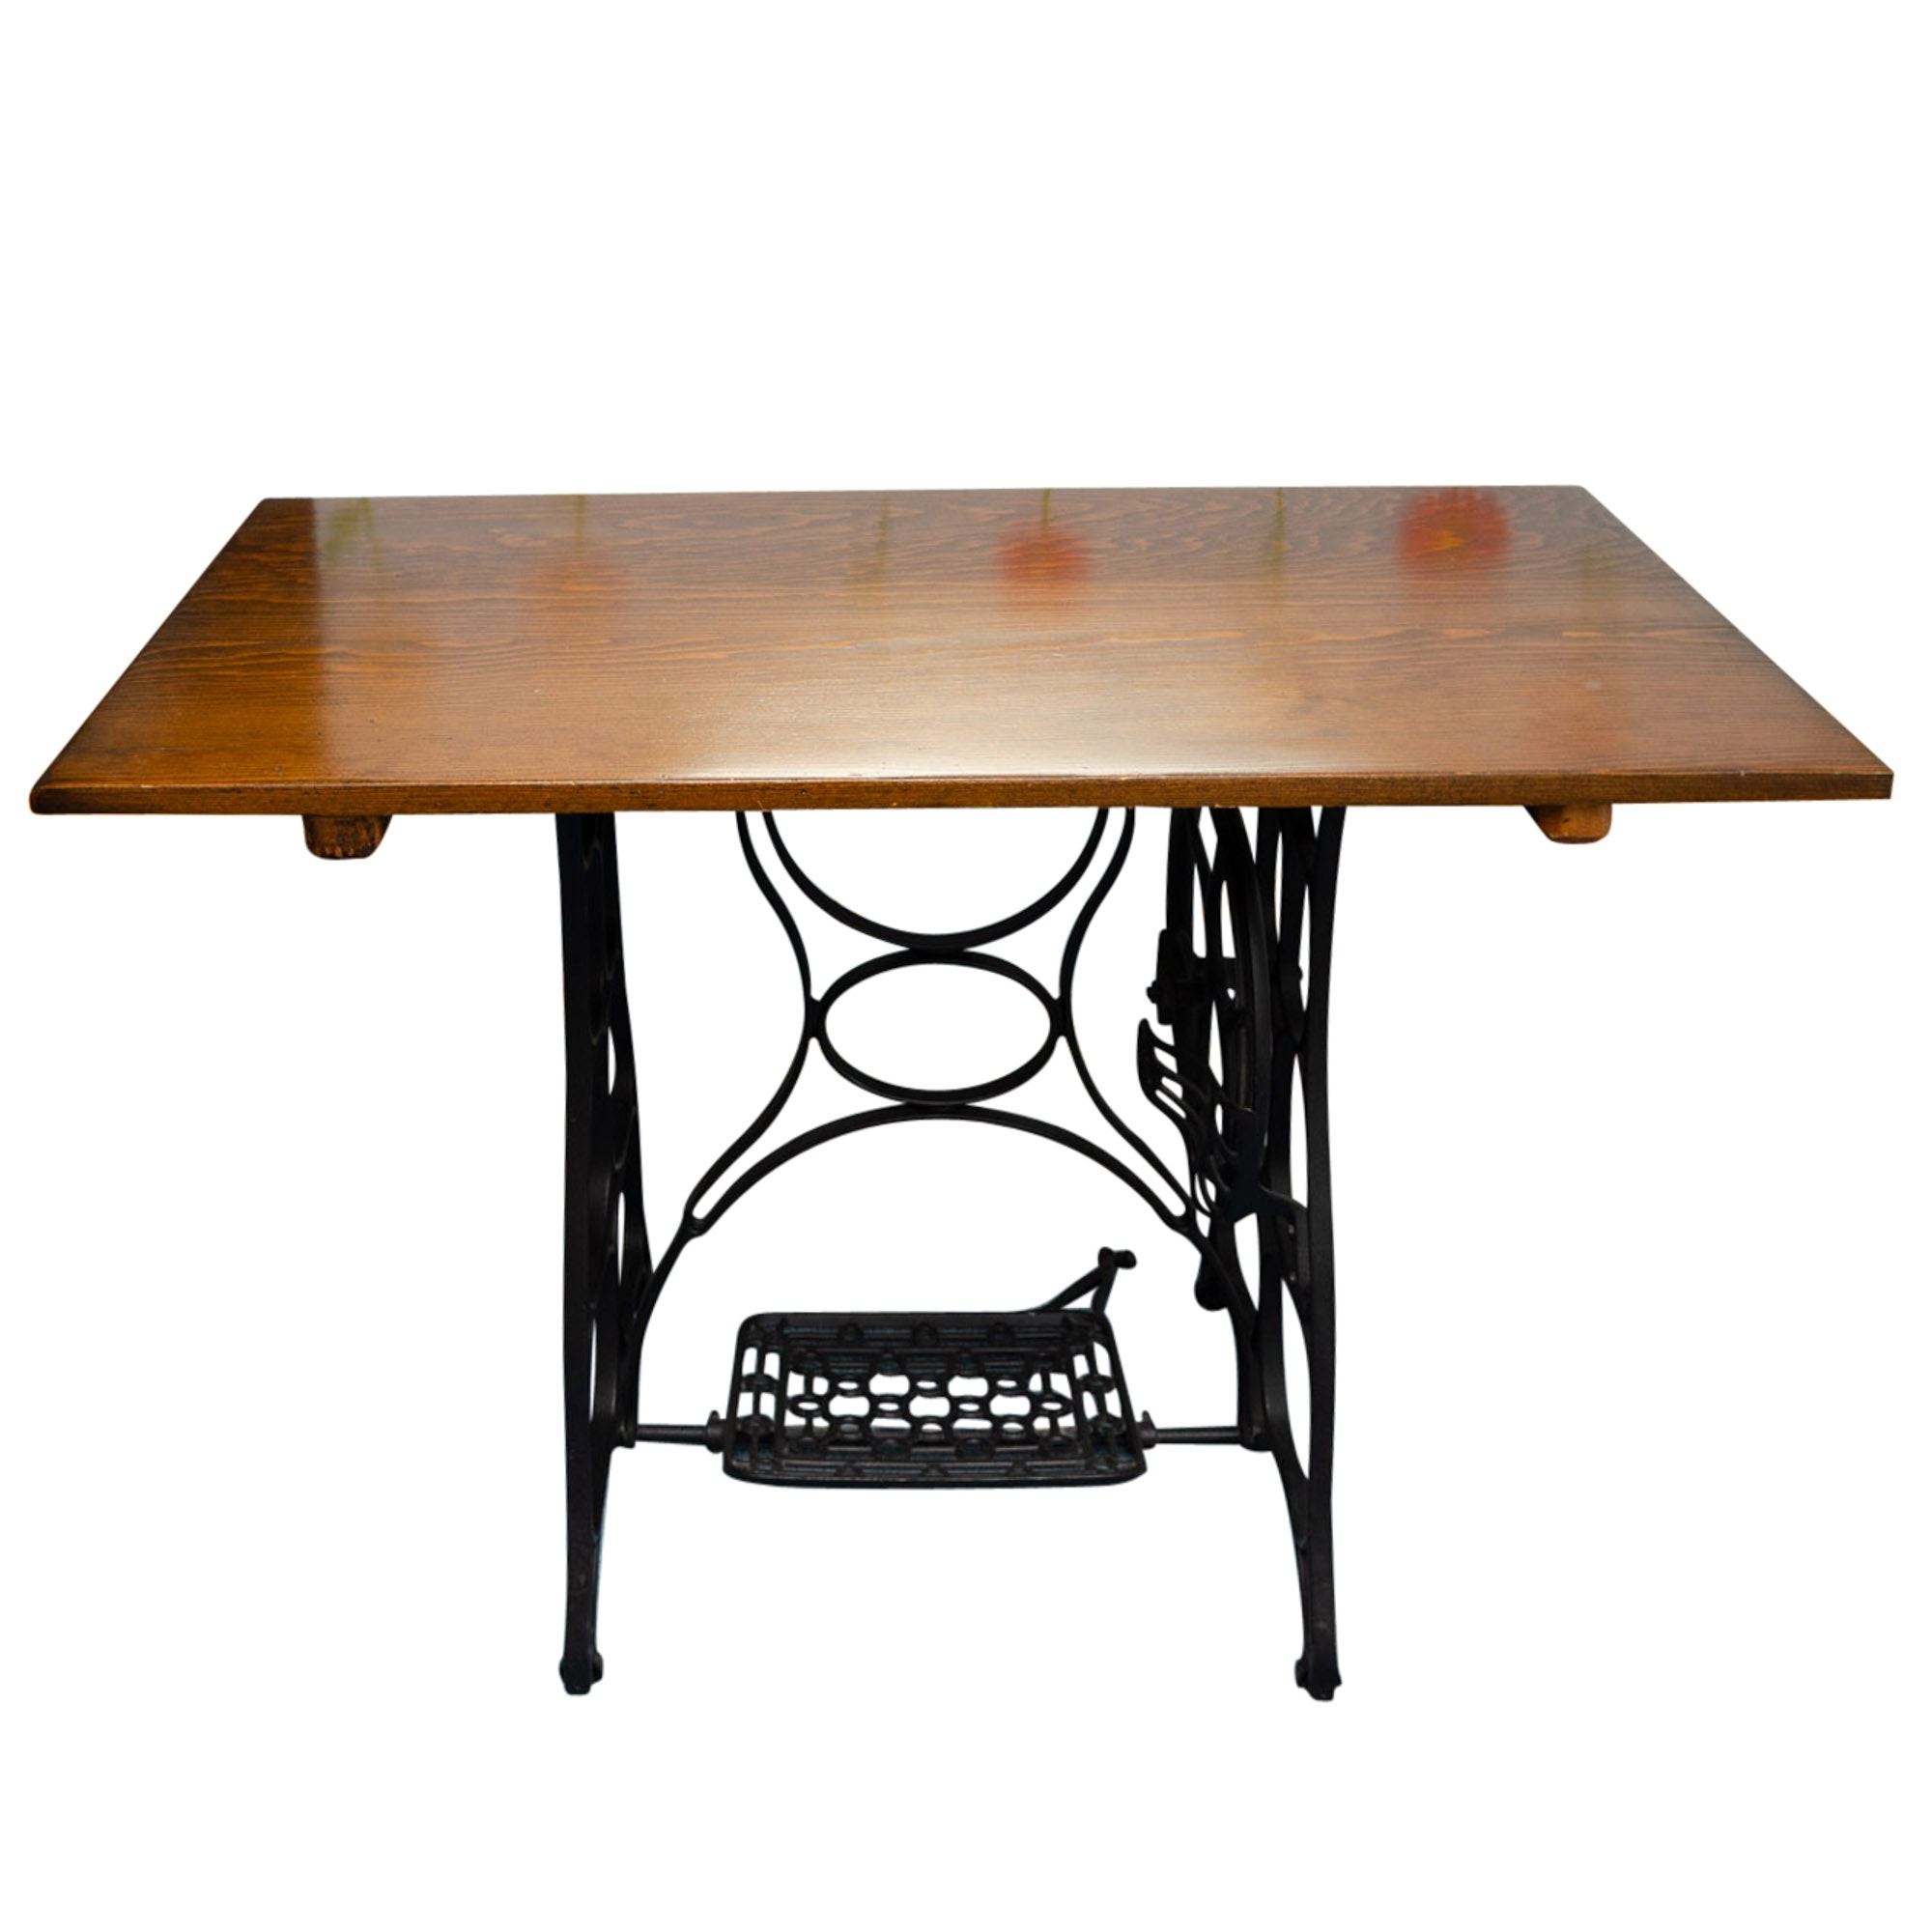 Converted Antique Sewing Machine Table ...